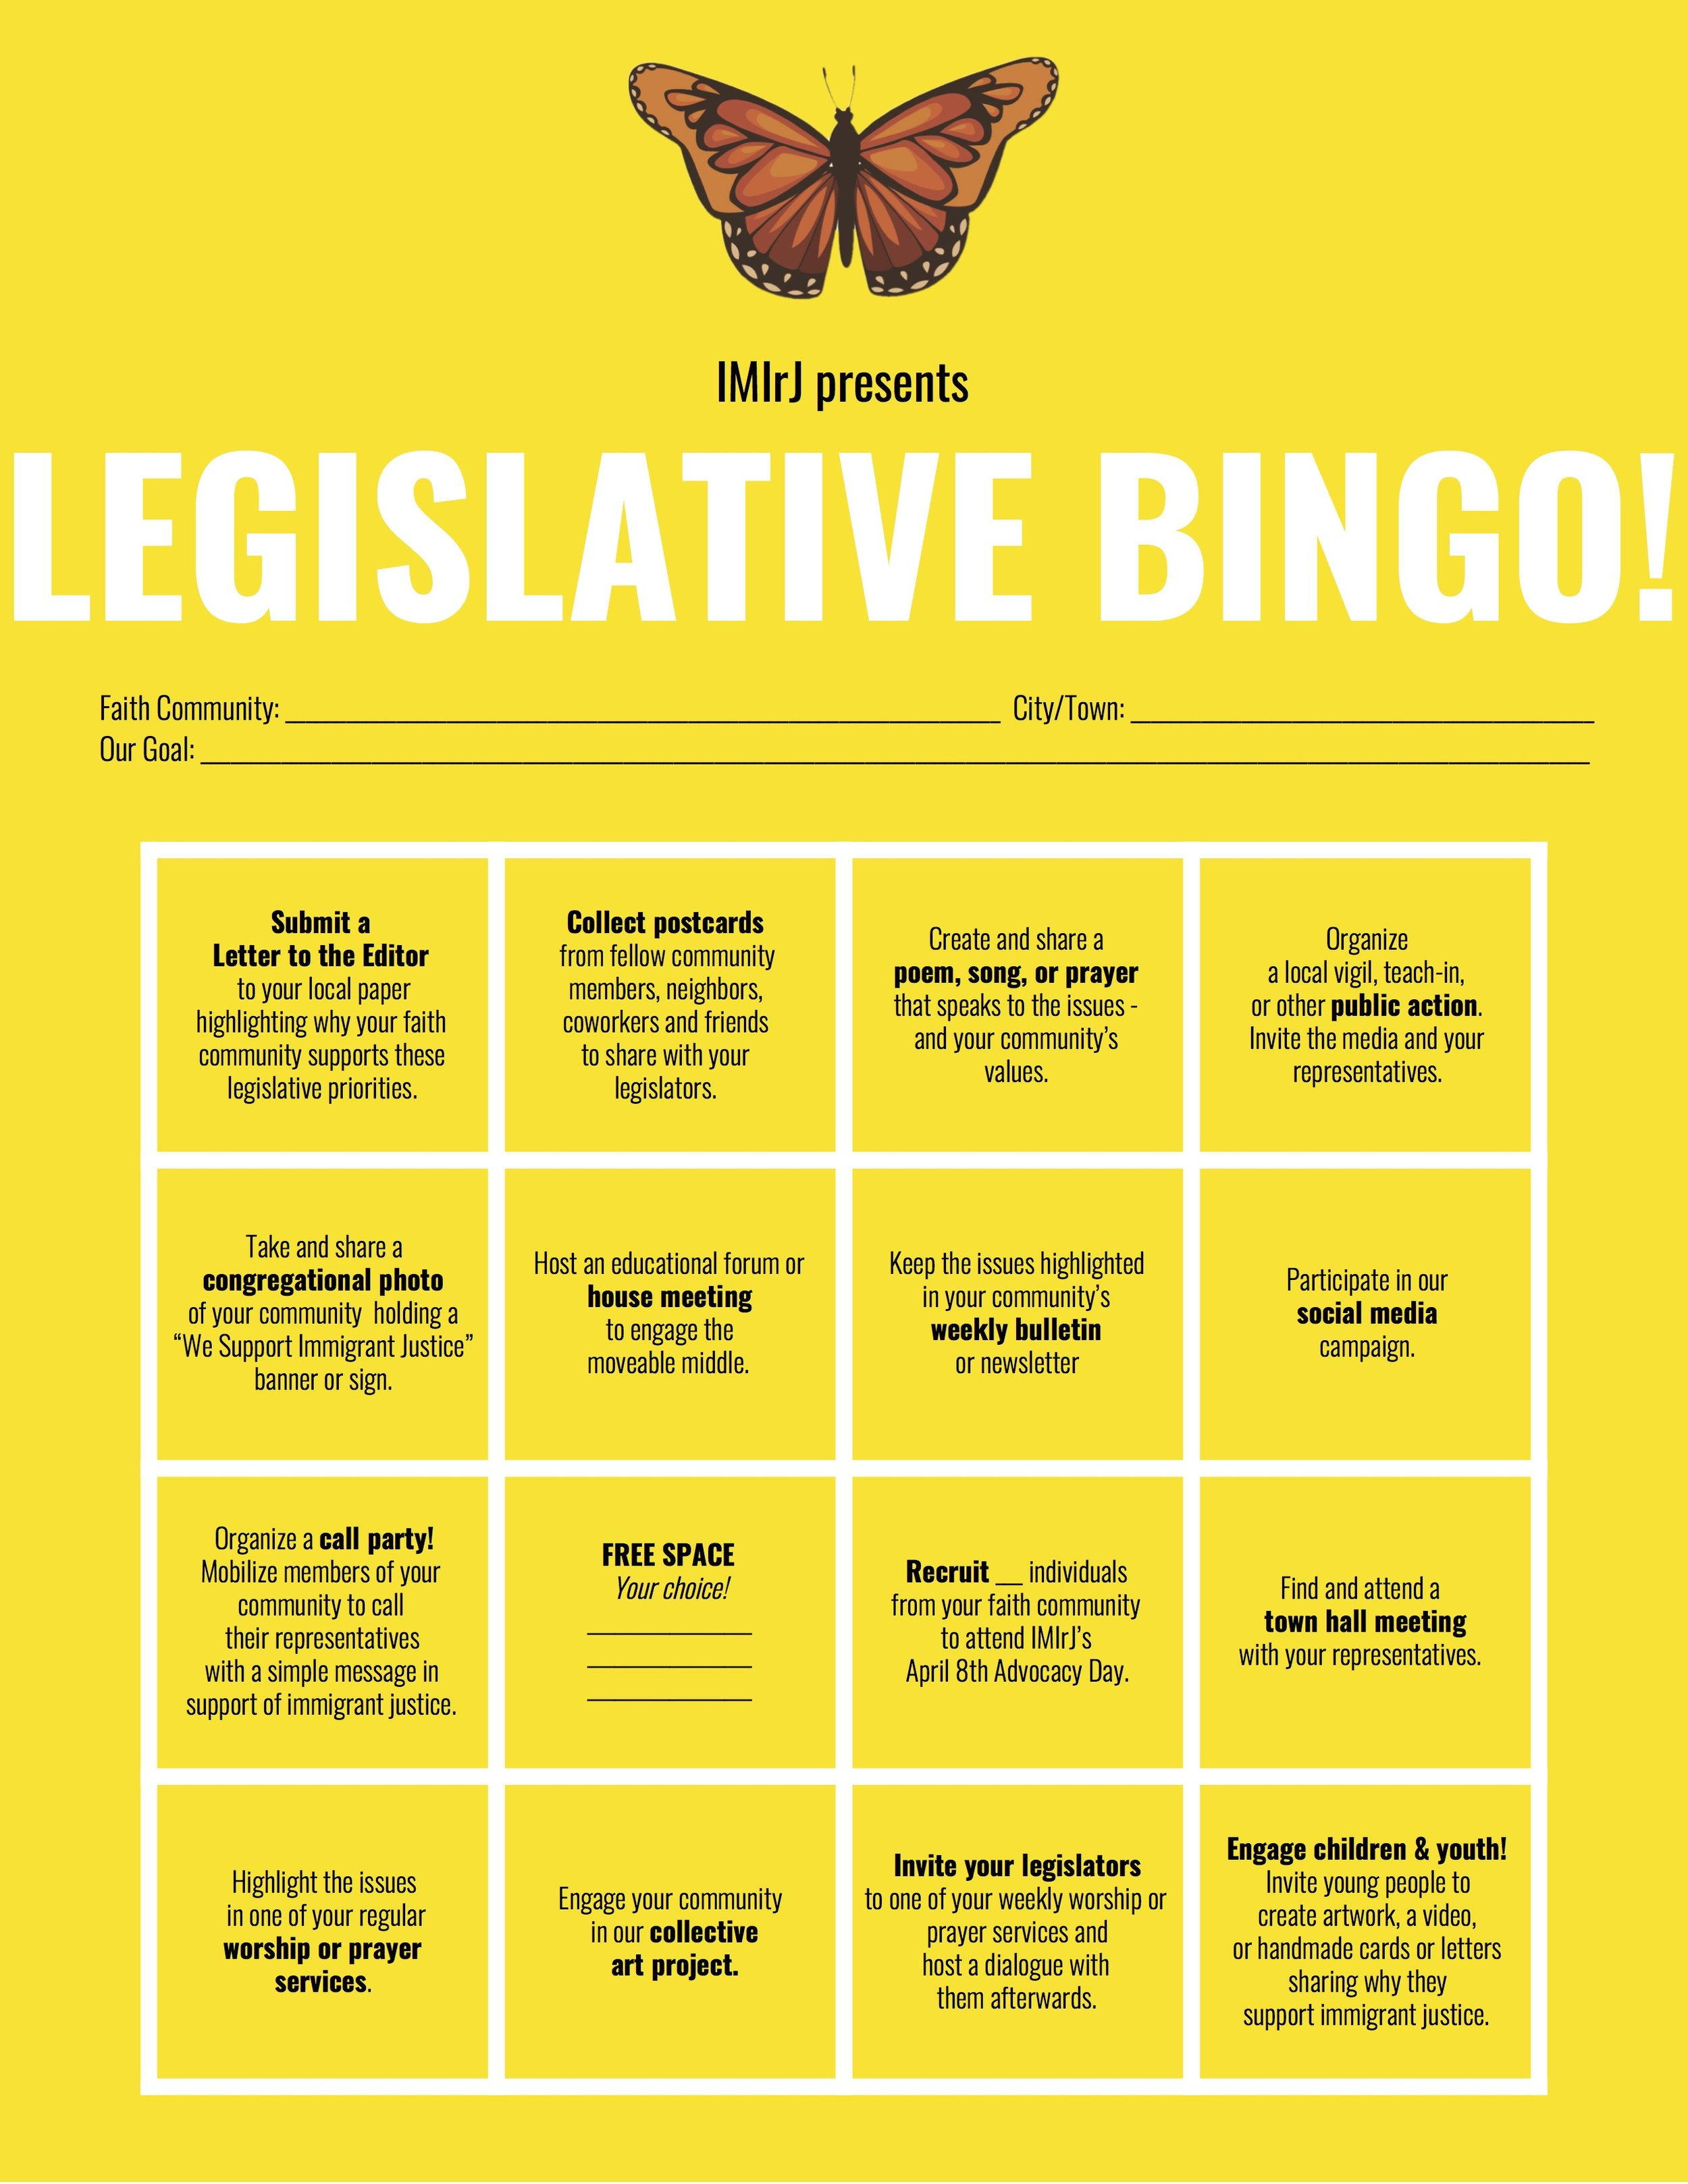 Let's Play Bingo! - Our 2019 Legislative Bingo Card includes concrete actions, political art projects, liturgical offerings and educational activities - with plenty of room for you to be creative and adapt for your own community's context. Download Card in Full Color here.Download Card for B&W printing here.En español here.Then sign up your faith community's team to play so we can support you, cheer you on, and make sure you are eligible for prizes!